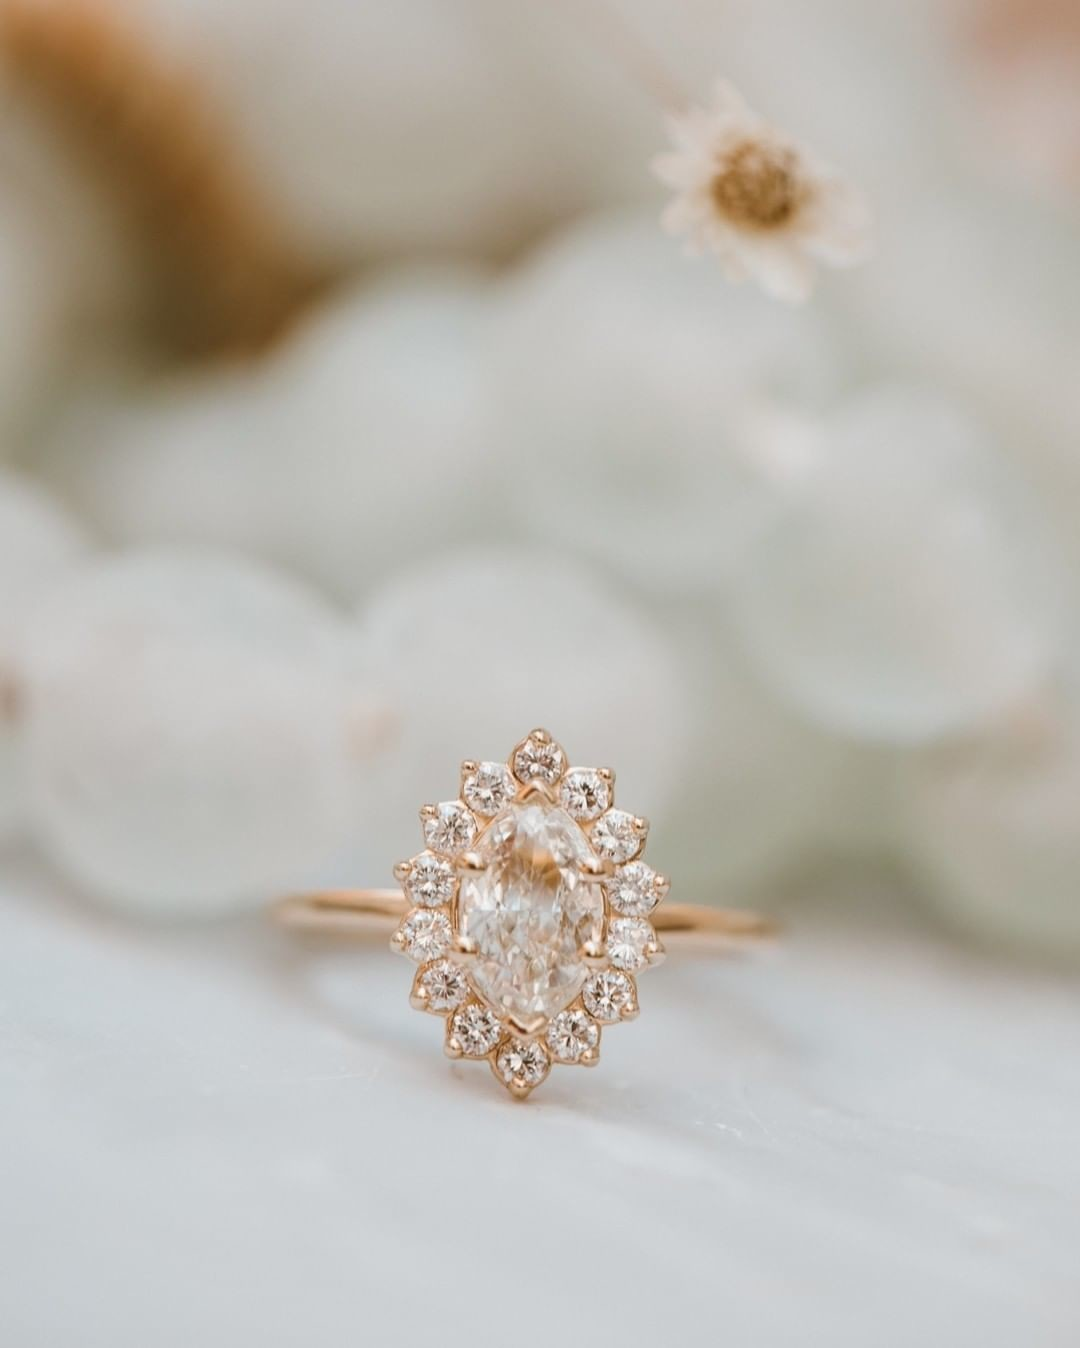 Dreamy champagne diamond ring with a starburst diamond halo available now at our Dairy Block location!